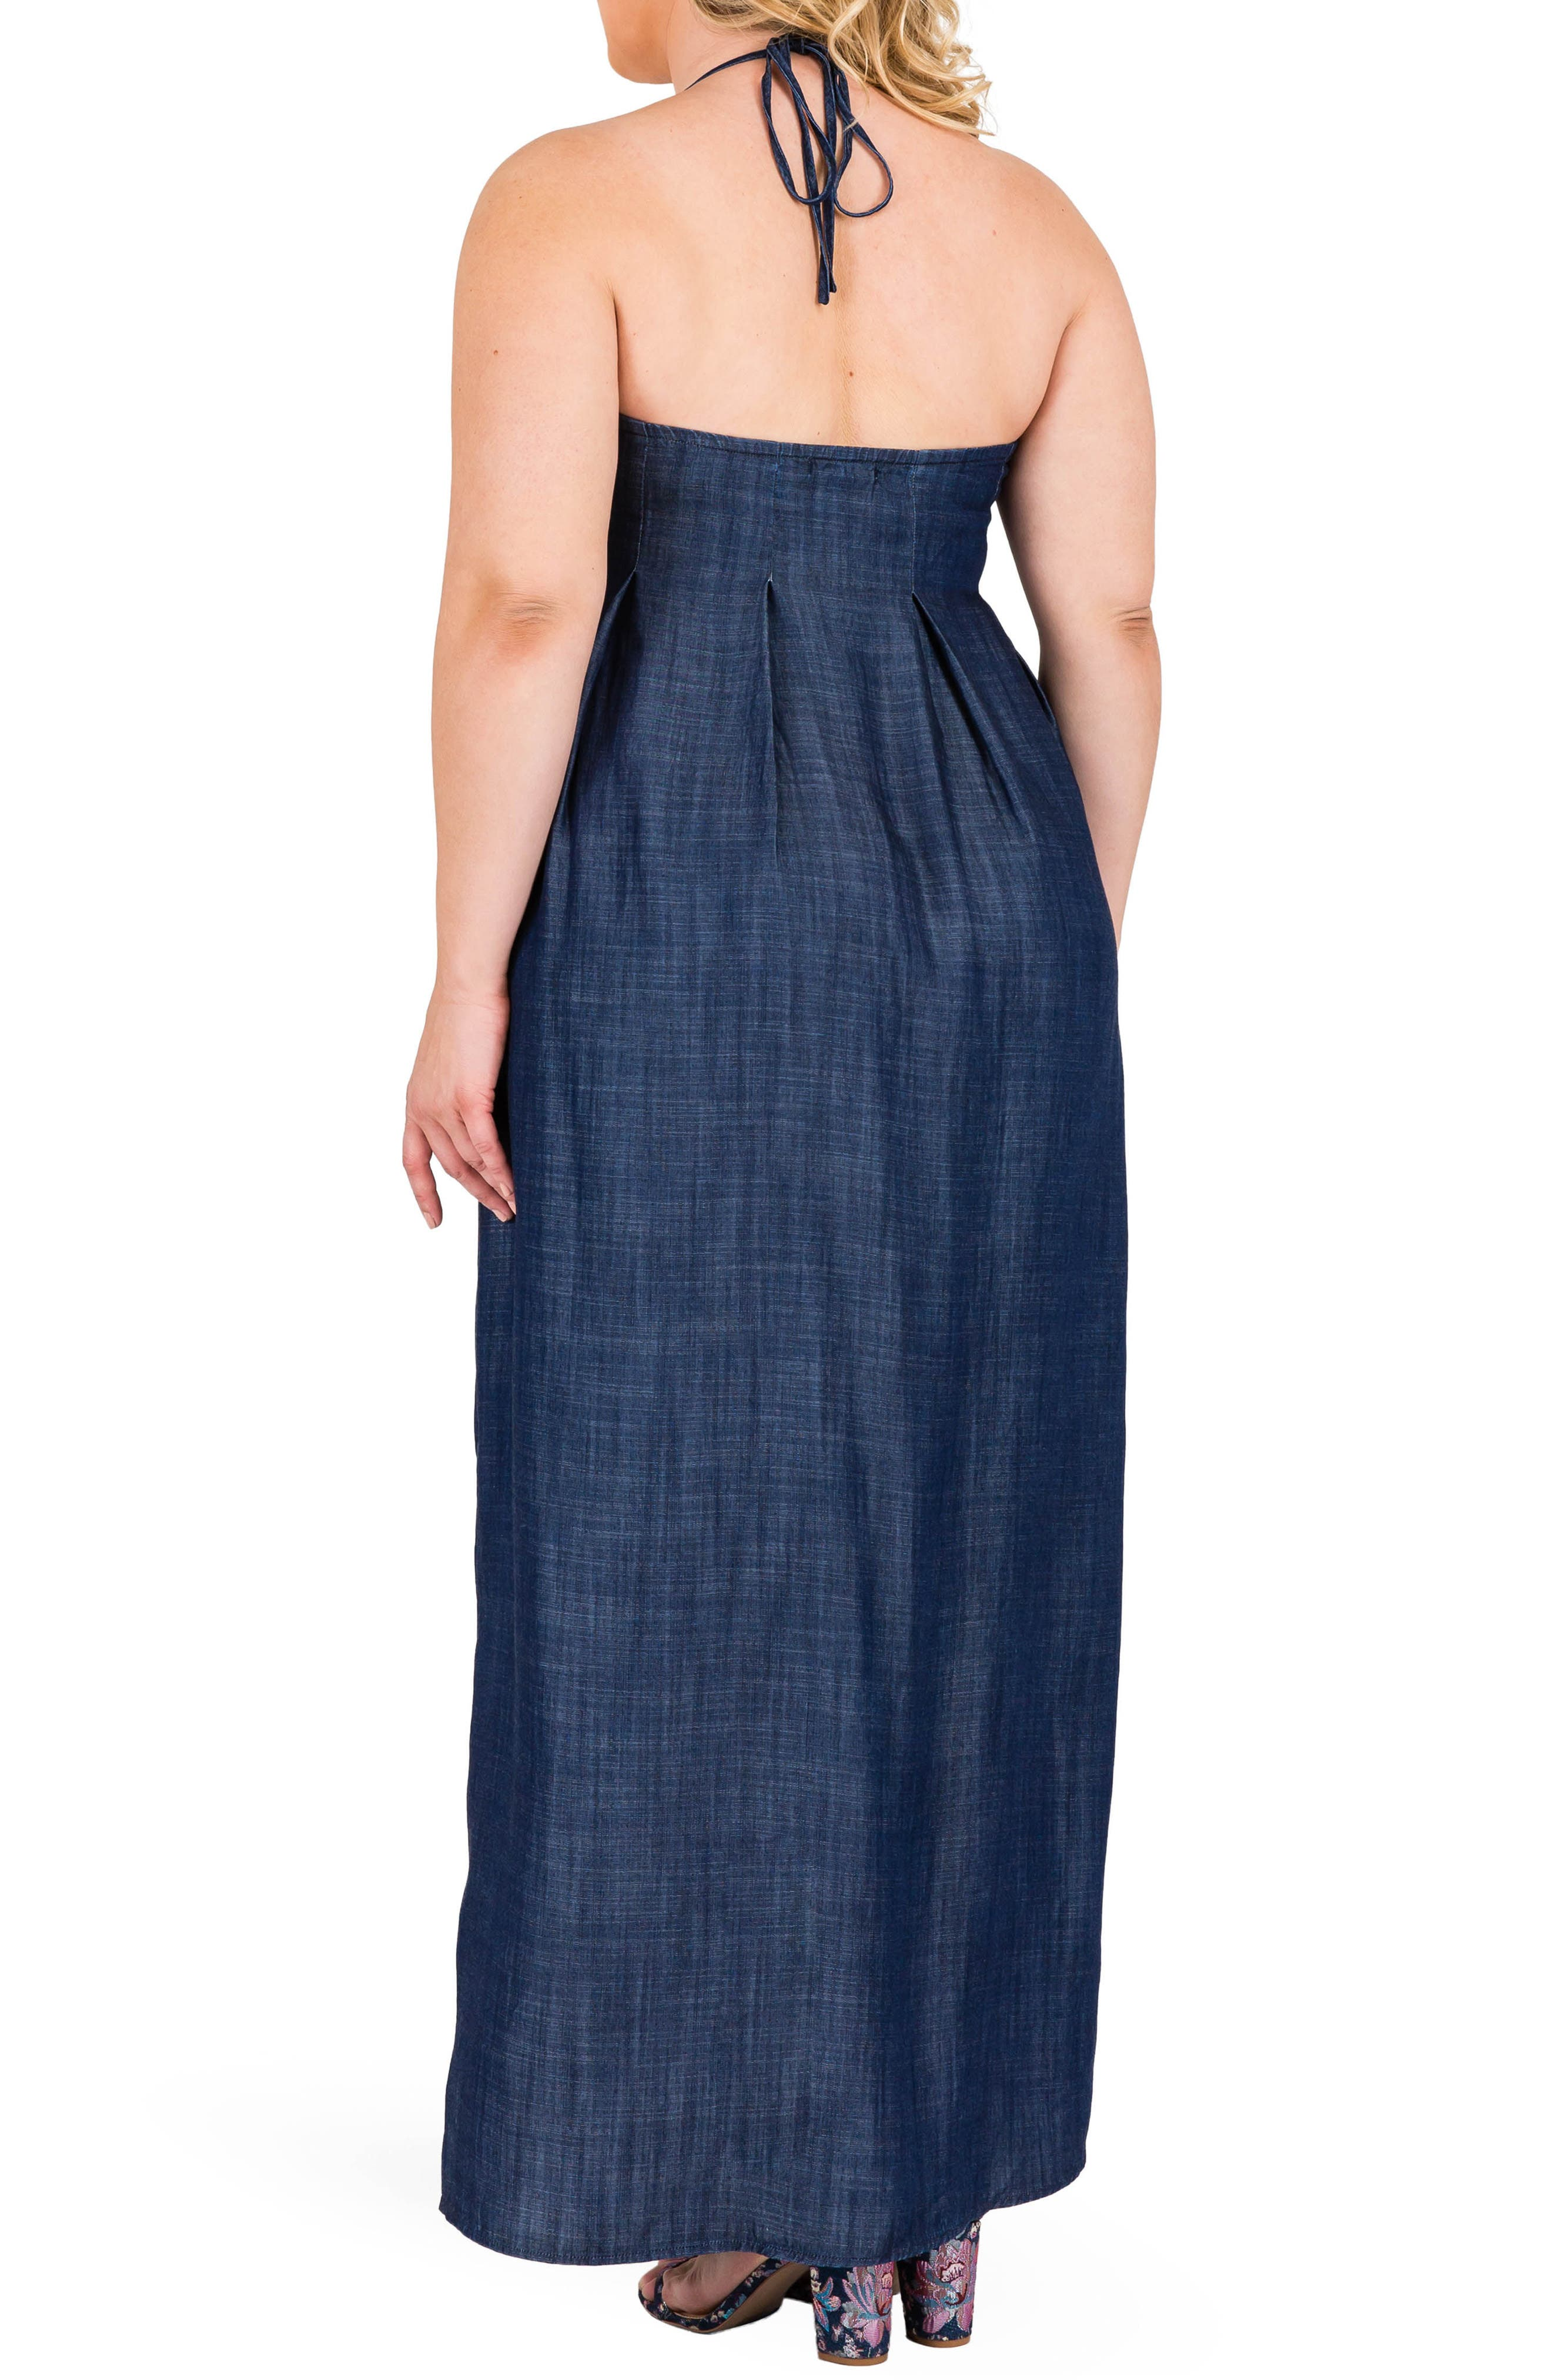 STANDARDS & PRACTICES,                             Maui Maxi Chambray Halter Dress,                             Alternate thumbnail 2, color,                             DARK BLUE